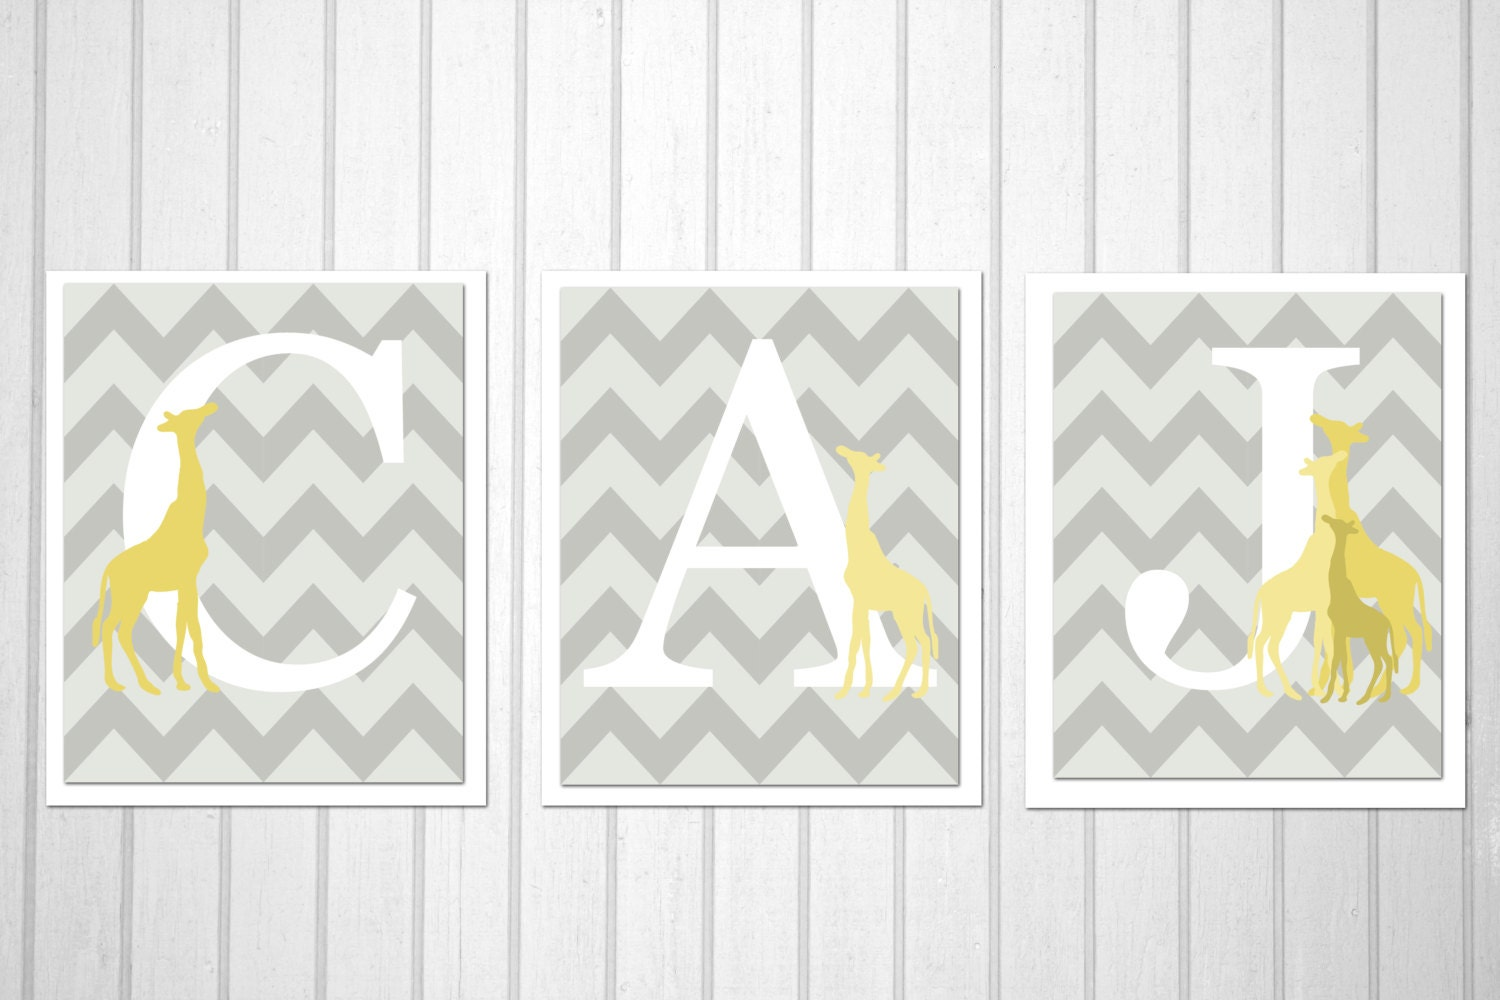 Popular items for initial wall decor on Etsy